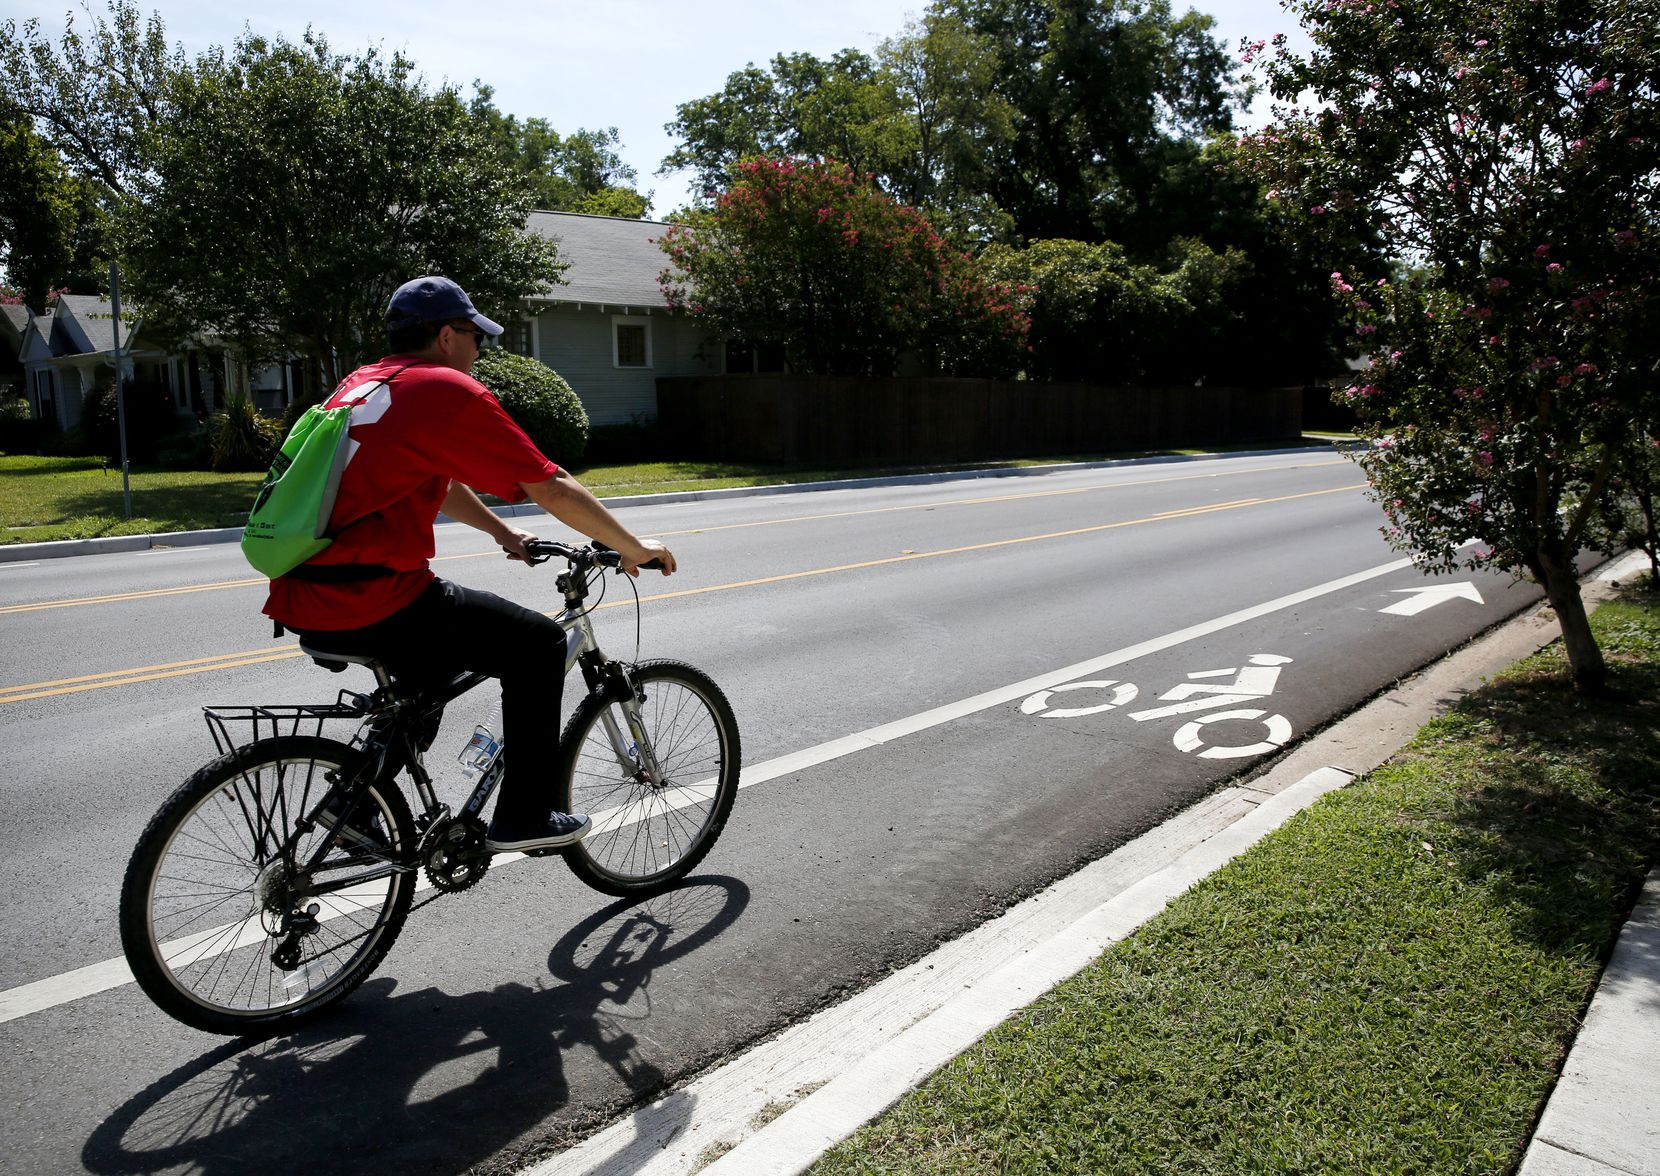 Felipe Garcia rides down a bike lane on Matilda Street in Dallas.